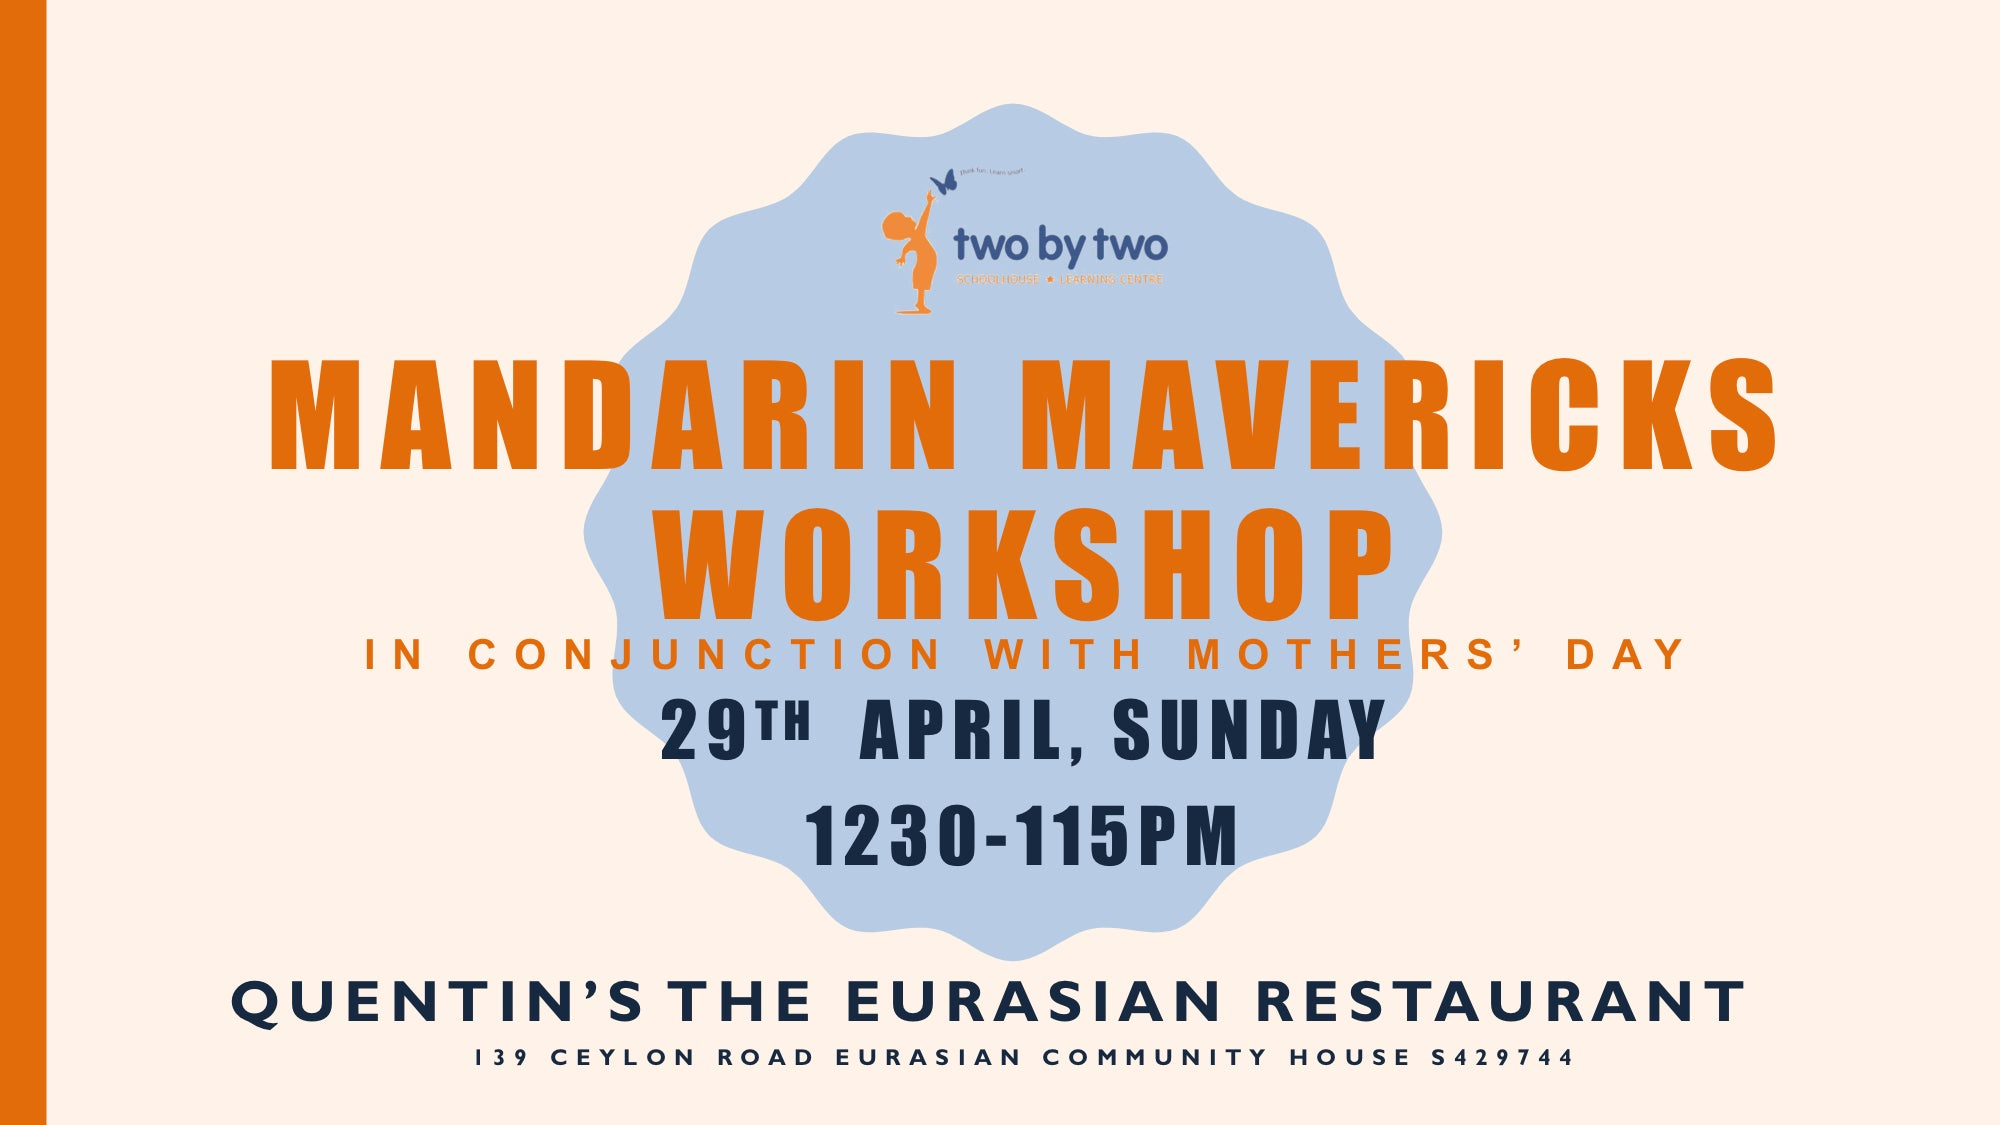 Mandarin Mavericks Workshop